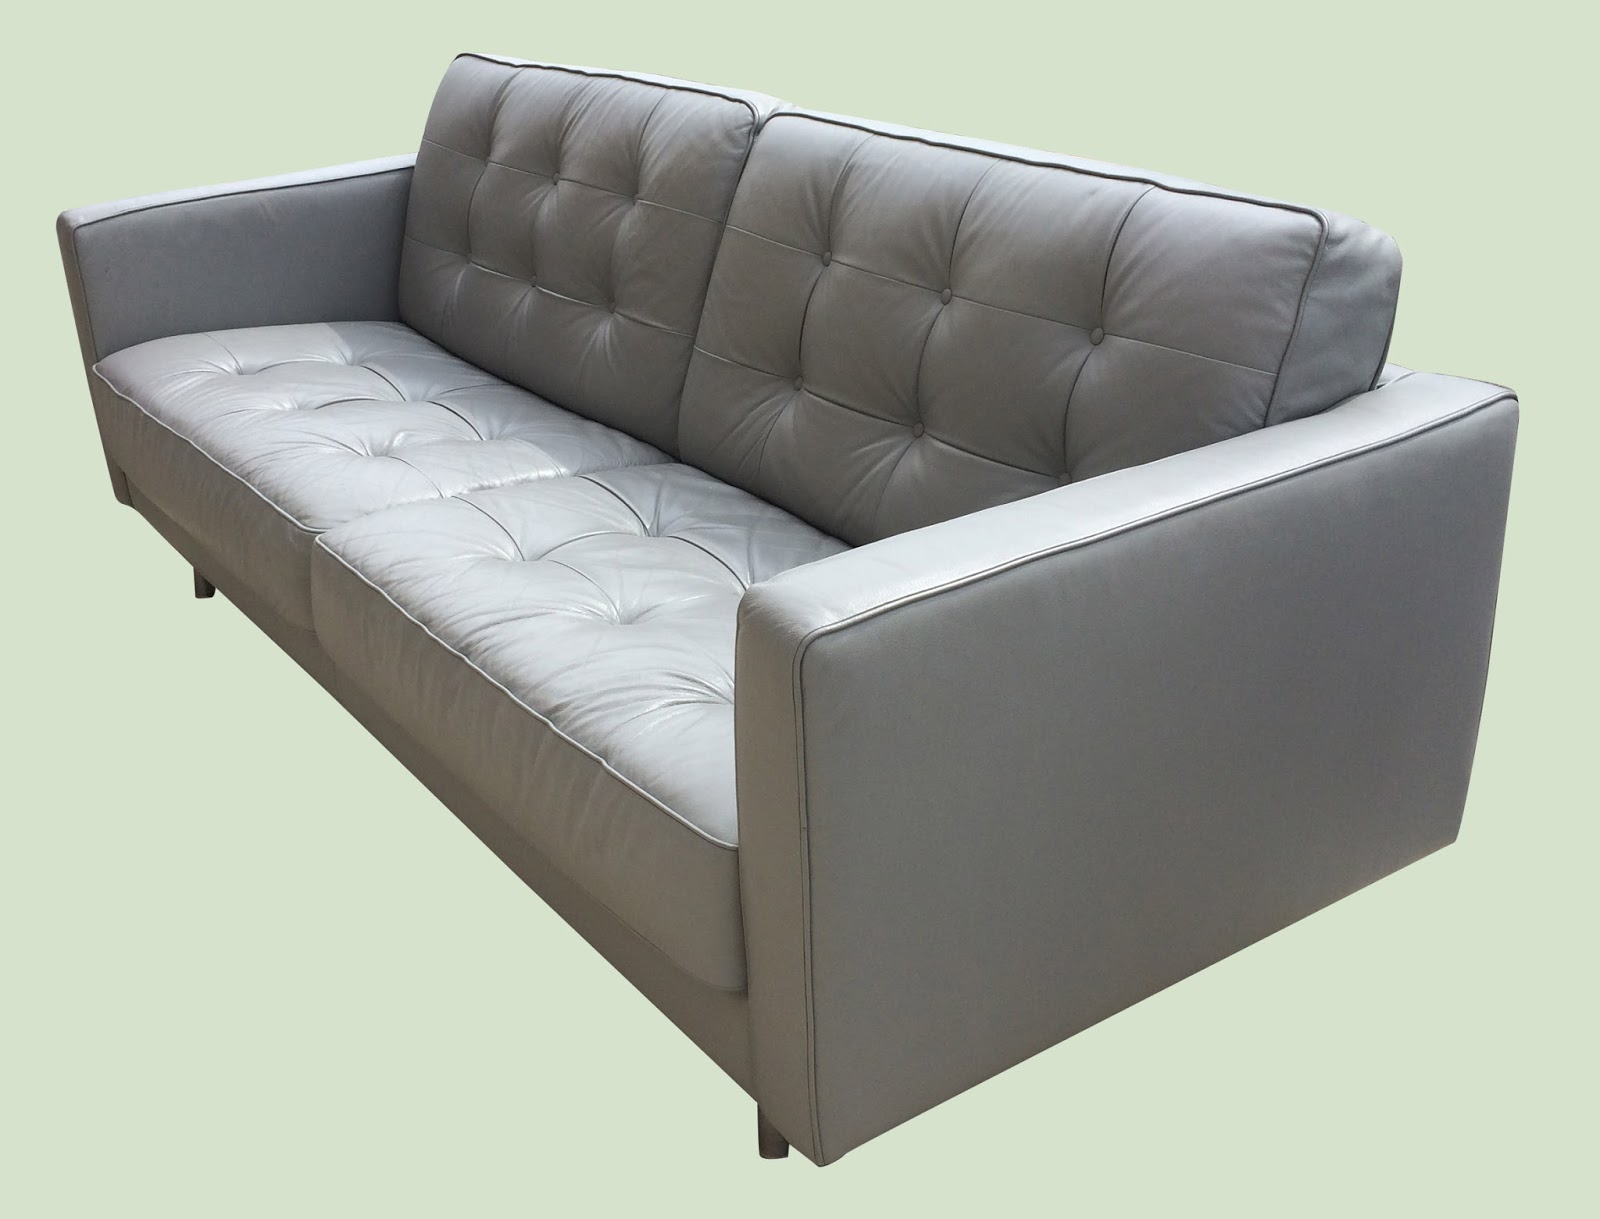 Light Grey Leather Sofa Sleeper London Ontario Uhuru Furniture And Collectibles Tufted Gray